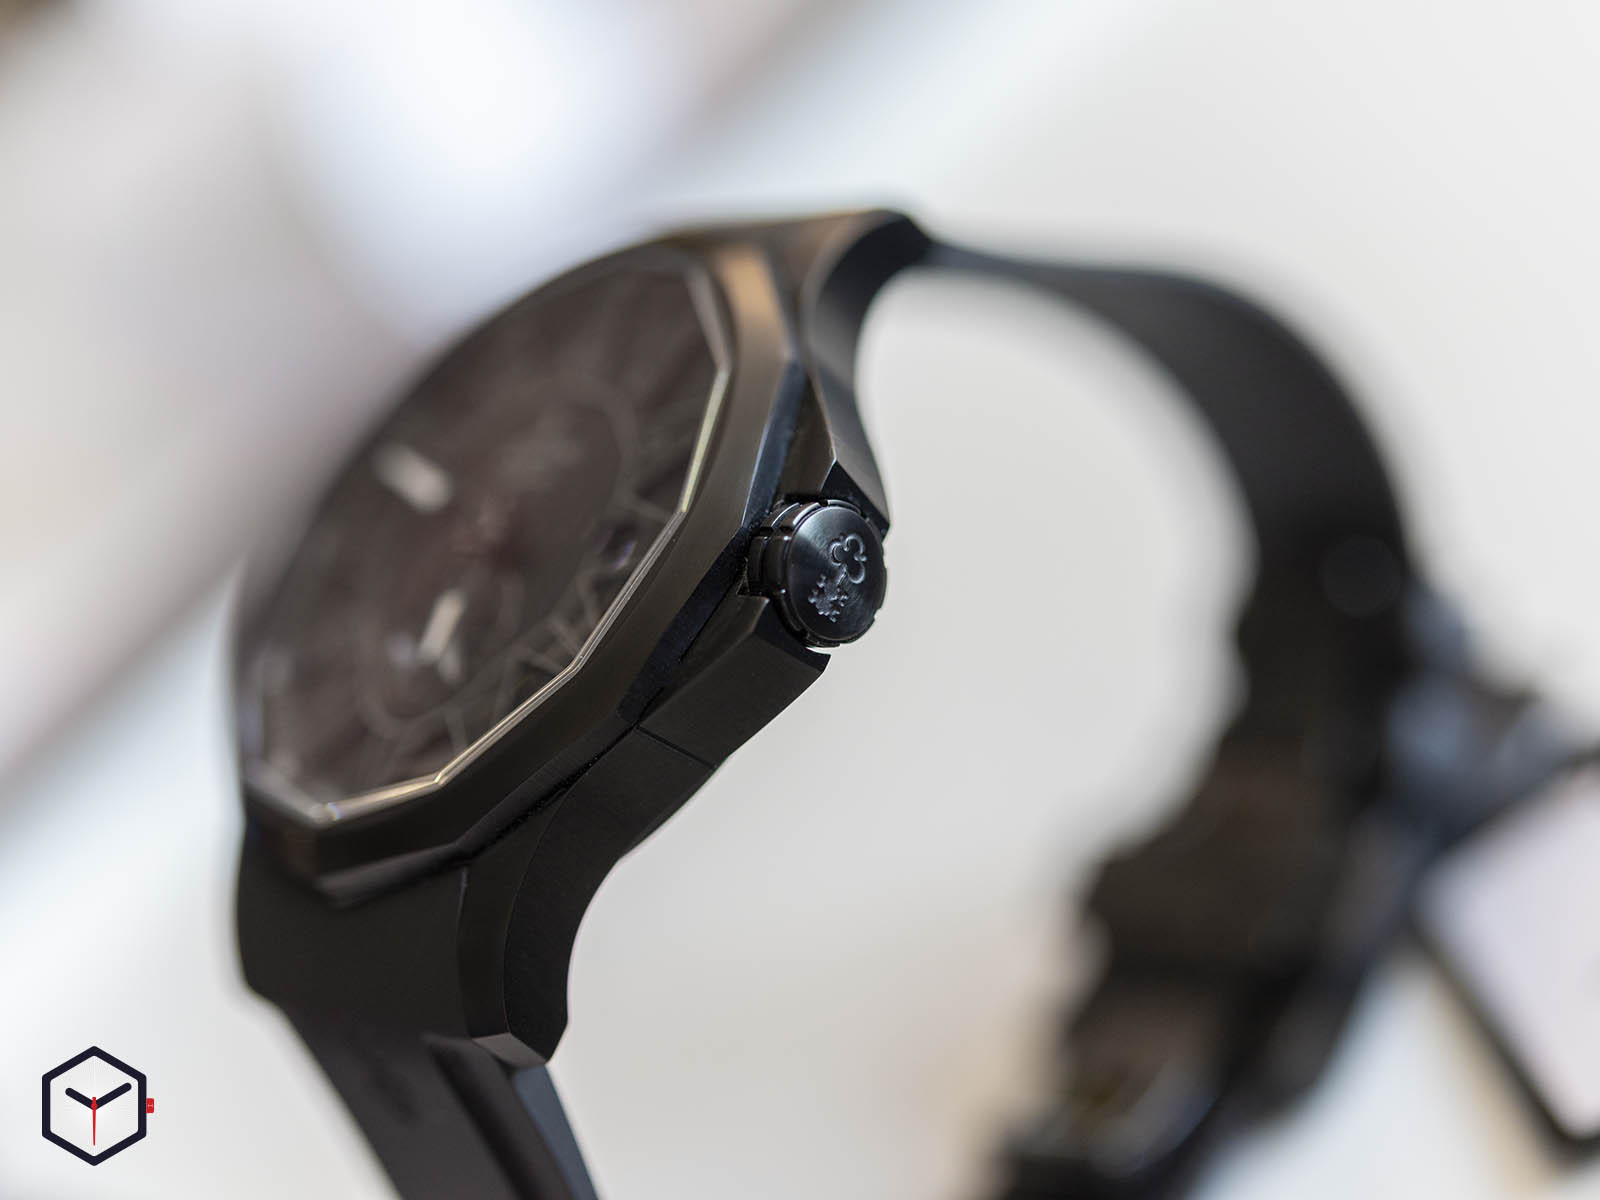 a395-03818-corum-admiral-42-full-black-limited-edition-3.jpg